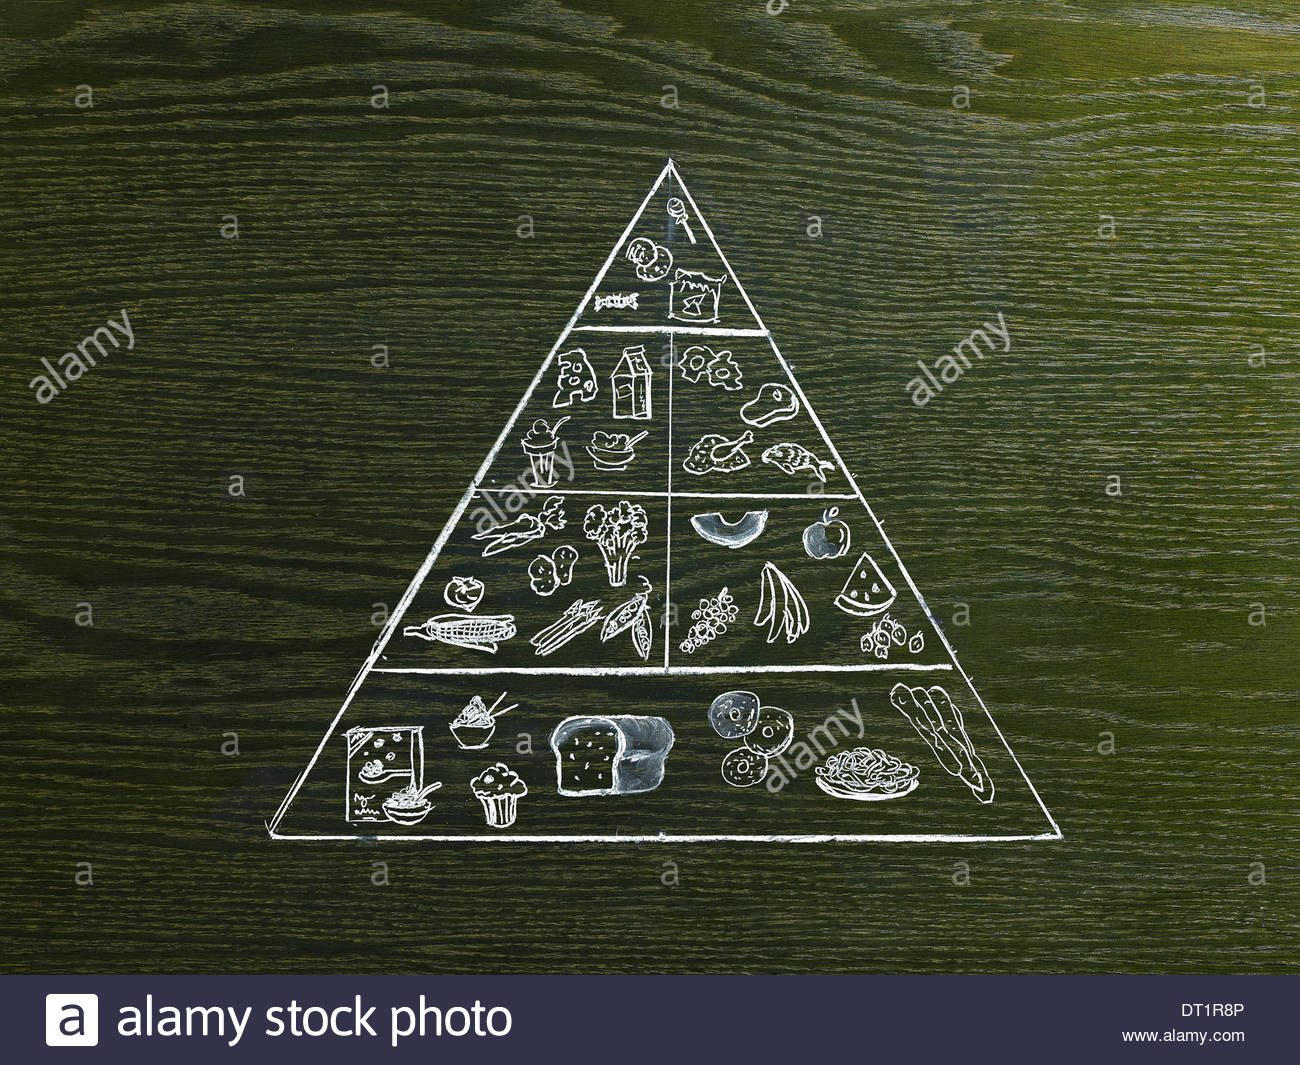 1300x1065 A Line Drawing Image On A Natural Wood Grain Background The Food